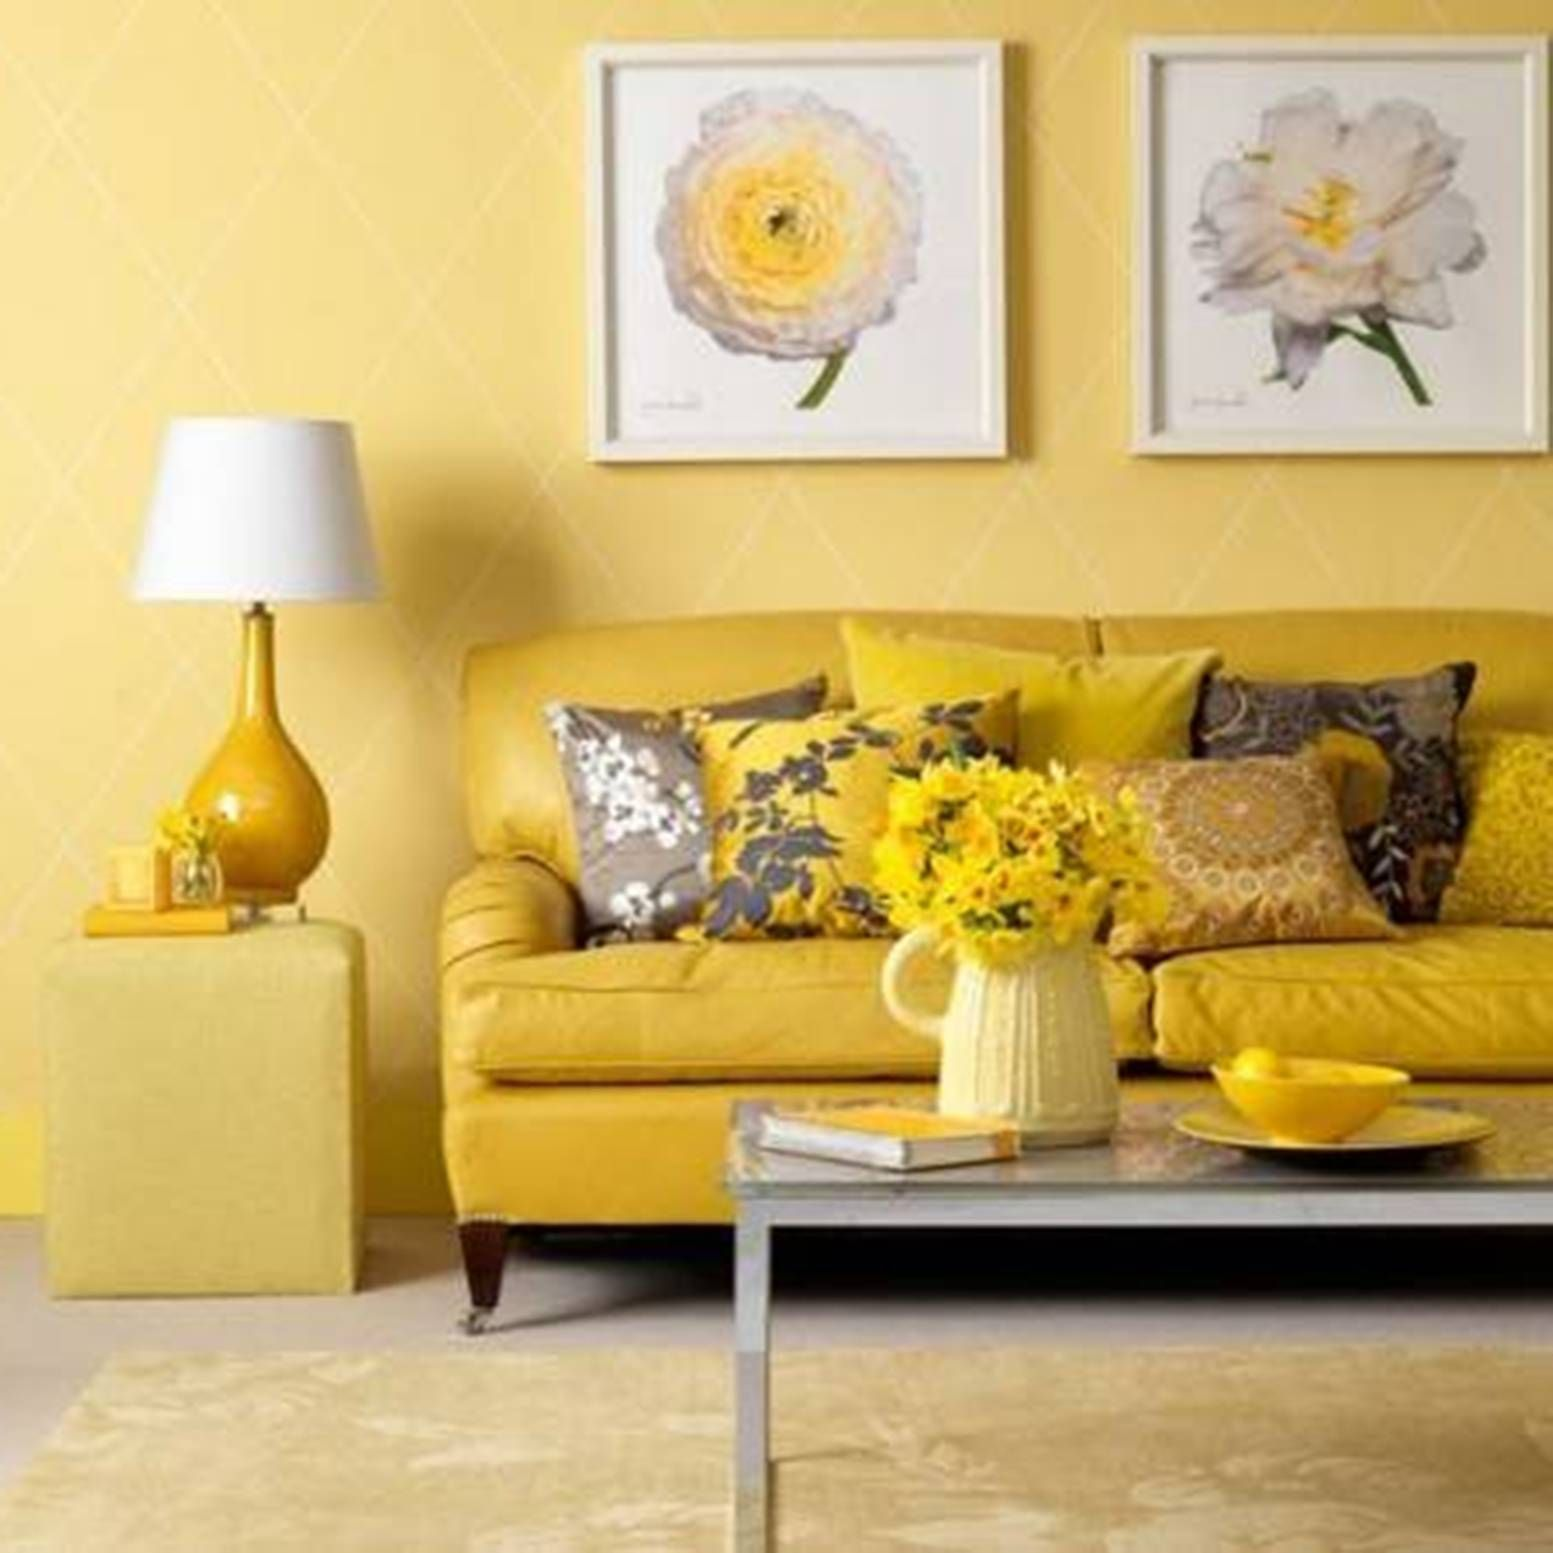 Home Decor Paints Decor Glamorous Design Inspiration